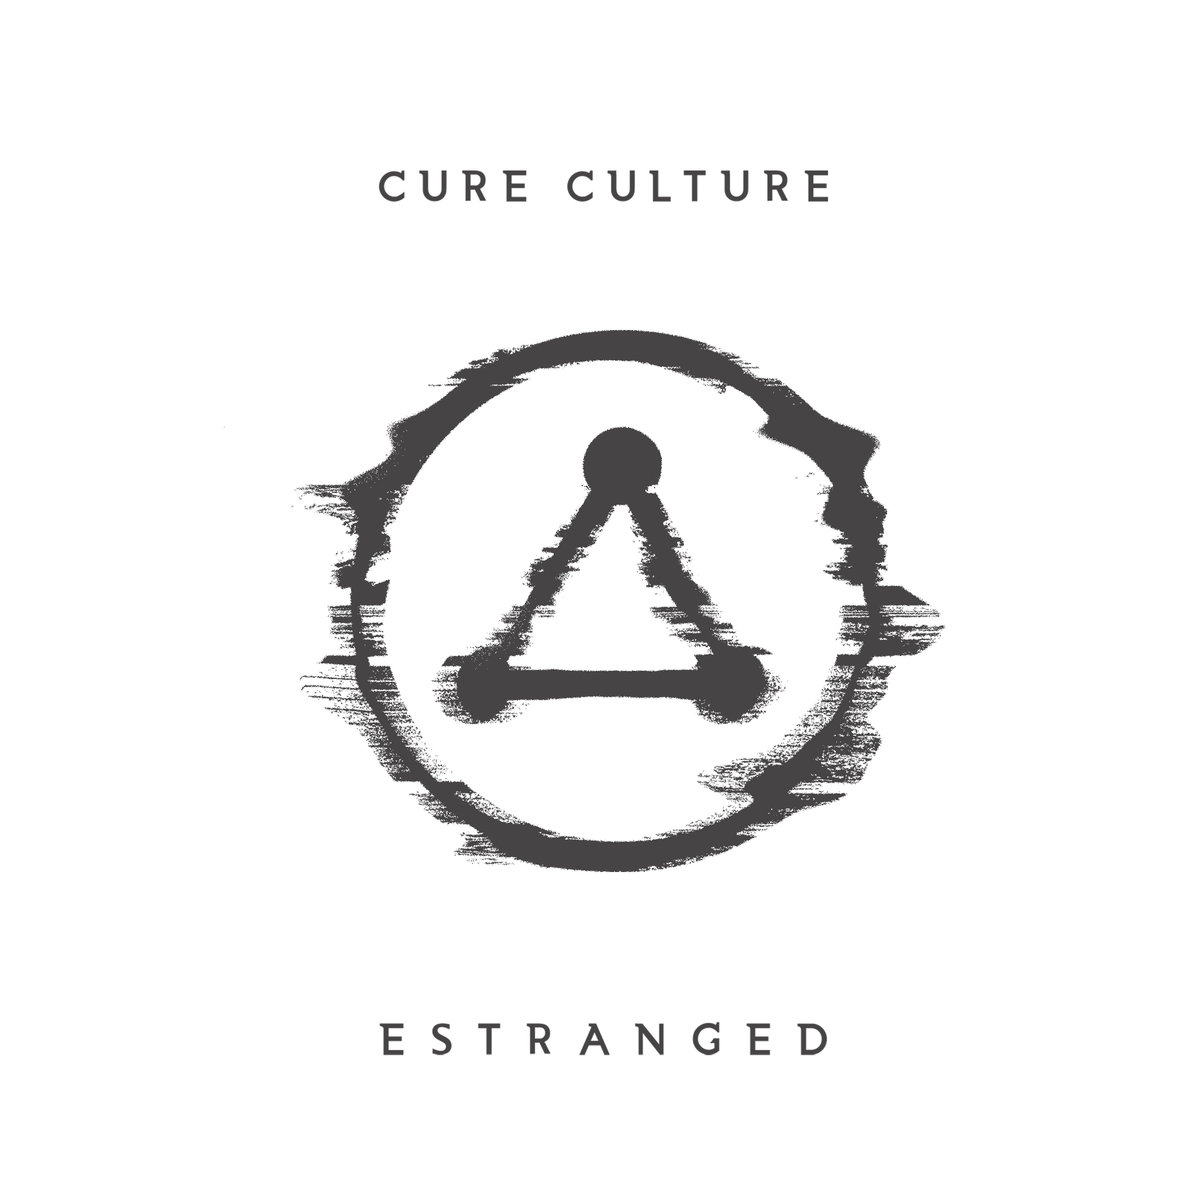 Cure Culture   Estranged   2017  (Production, Engineering, Mixing)